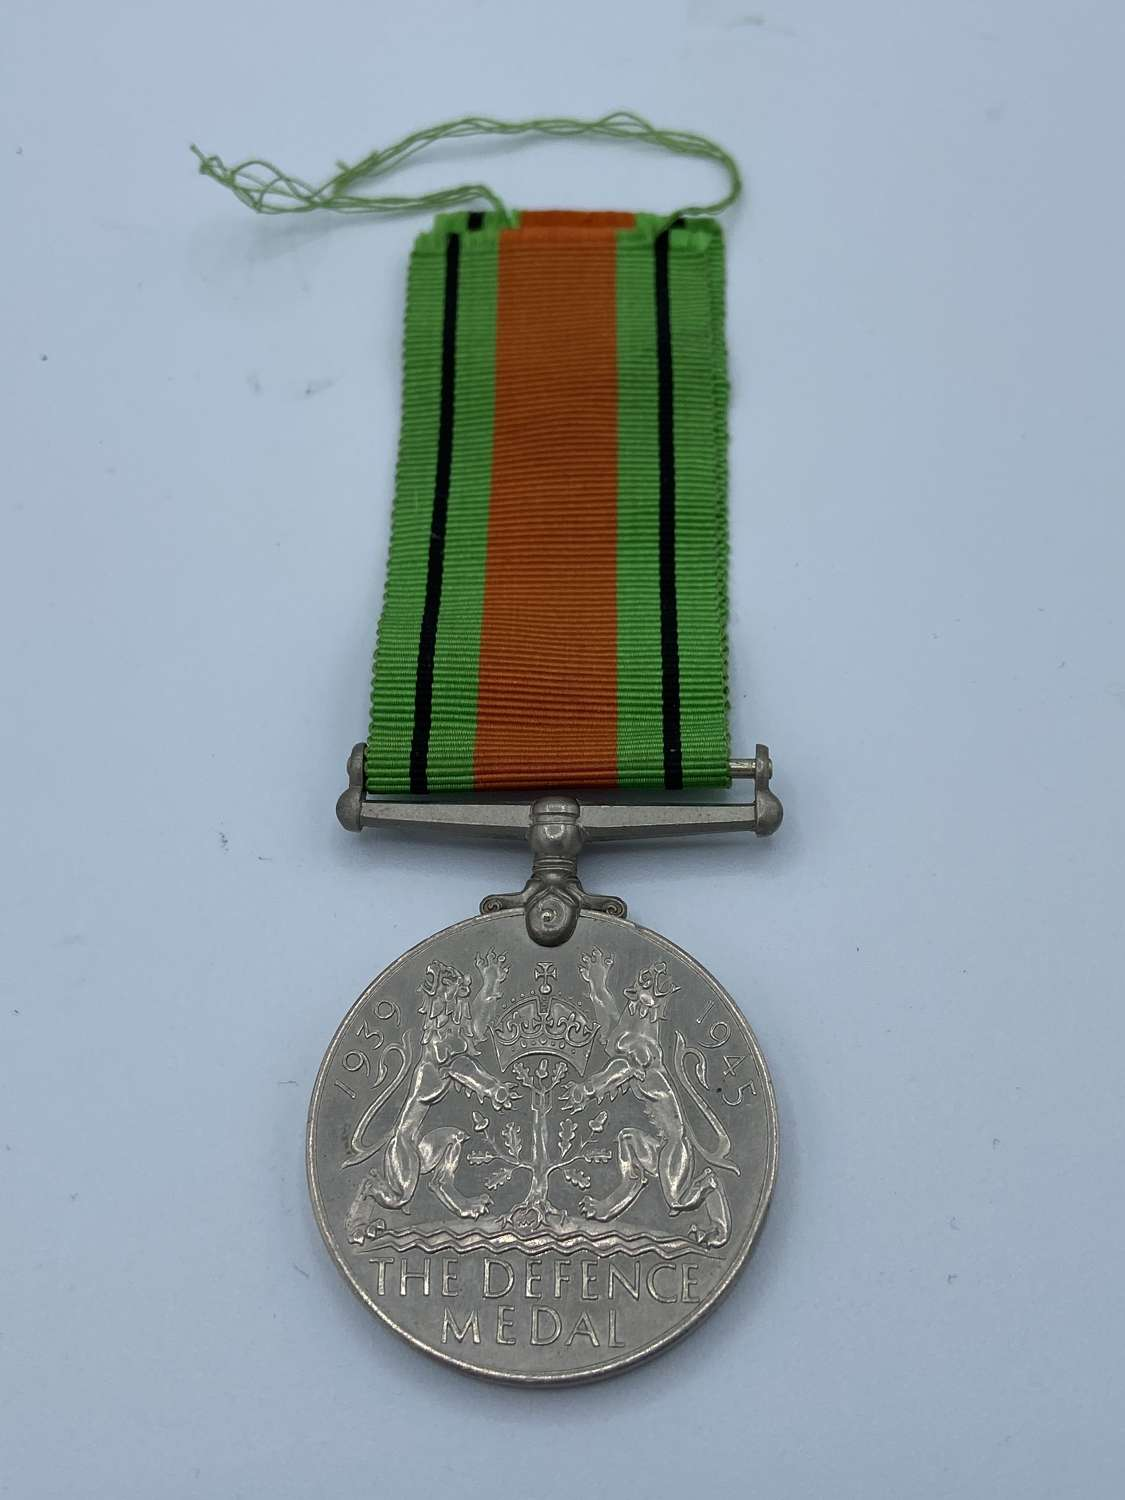 WW2 British Defence Medal And Ribbon